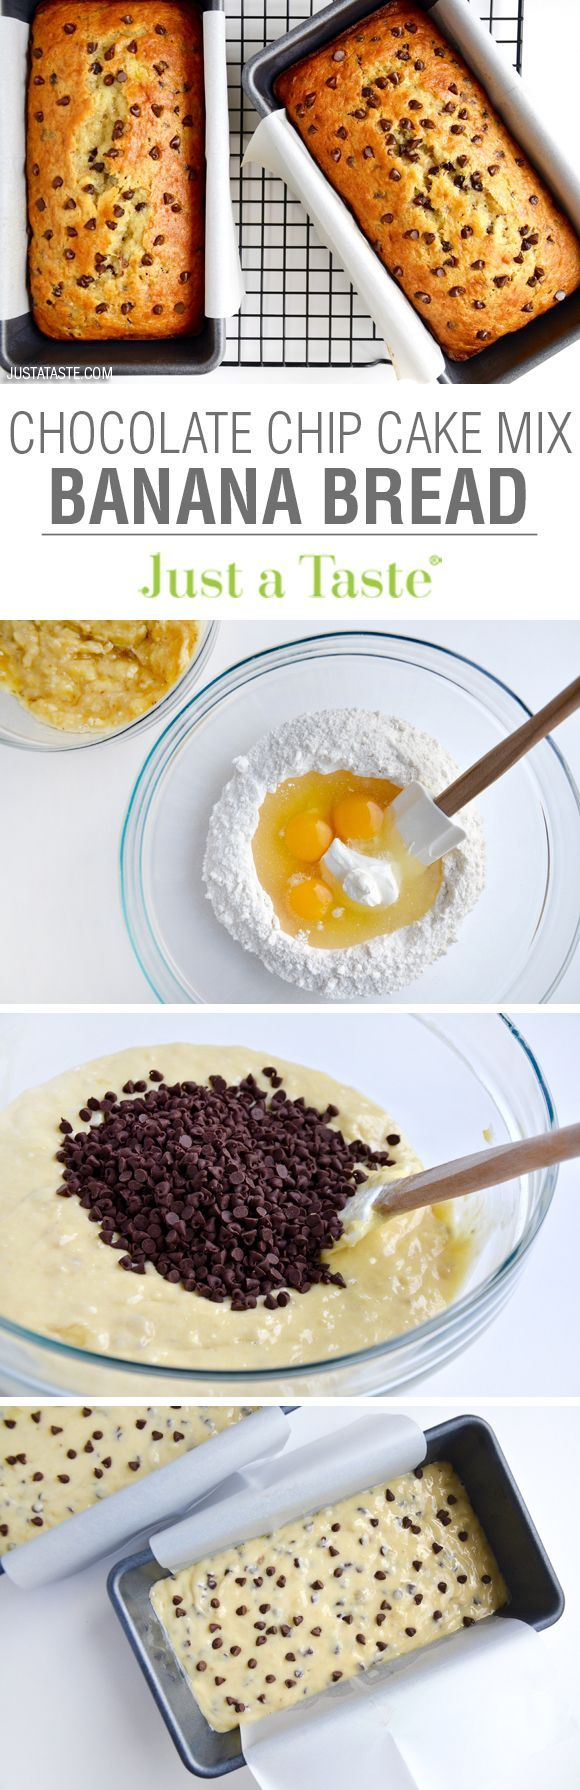 Chocolate Chip Cake Mix Banana Bread | recipe via http://justataste.com